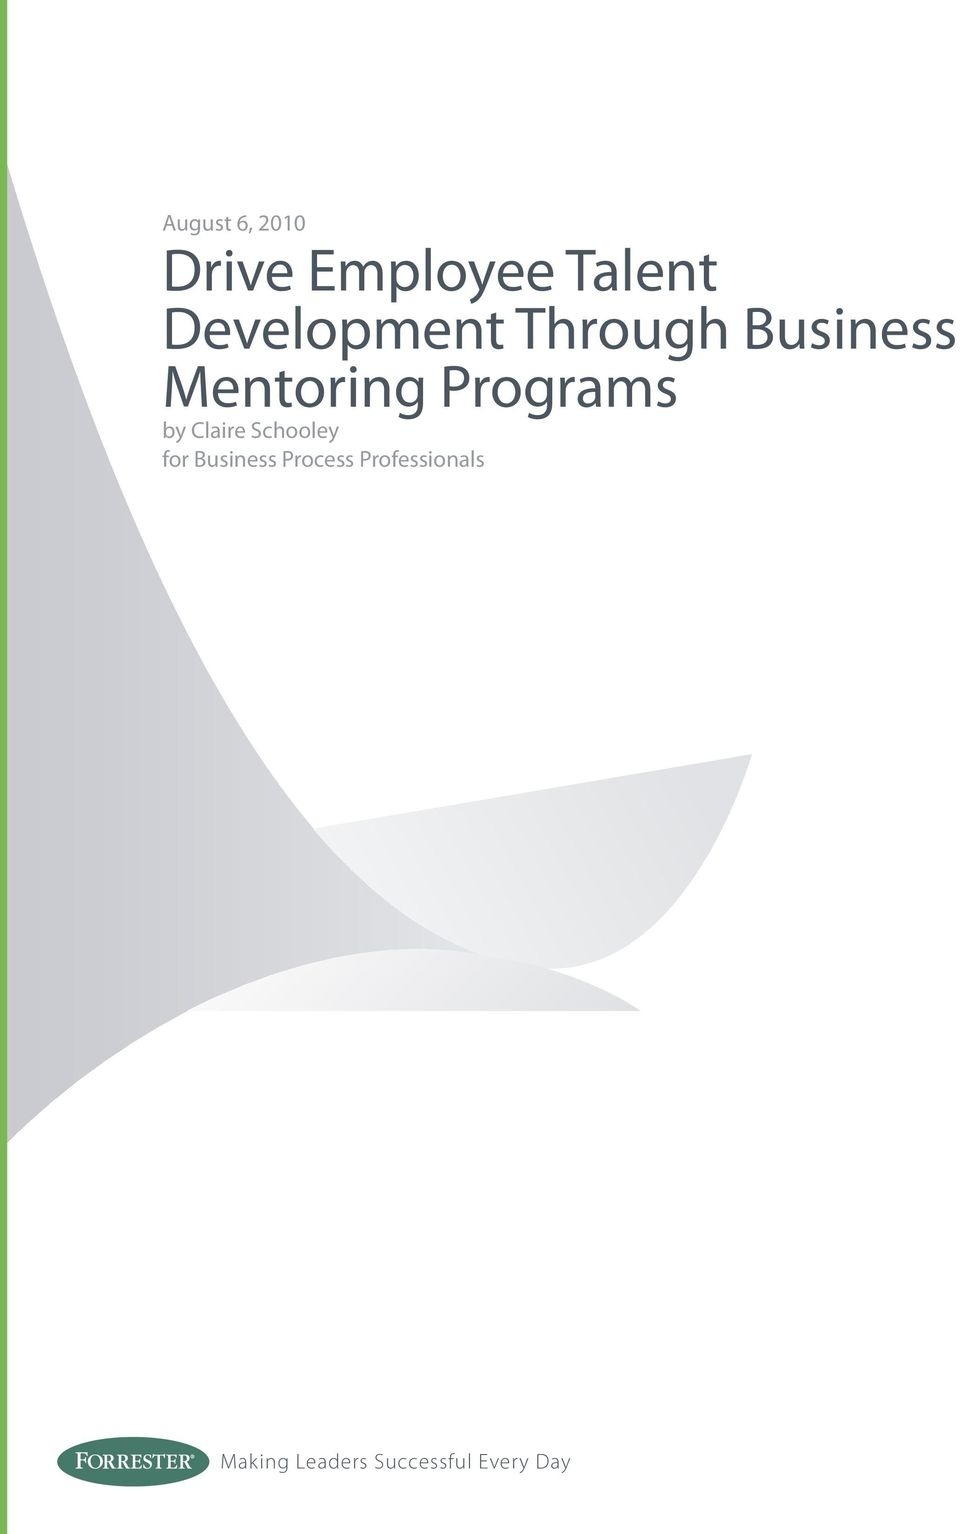 Programs by Claire Schooley for Business